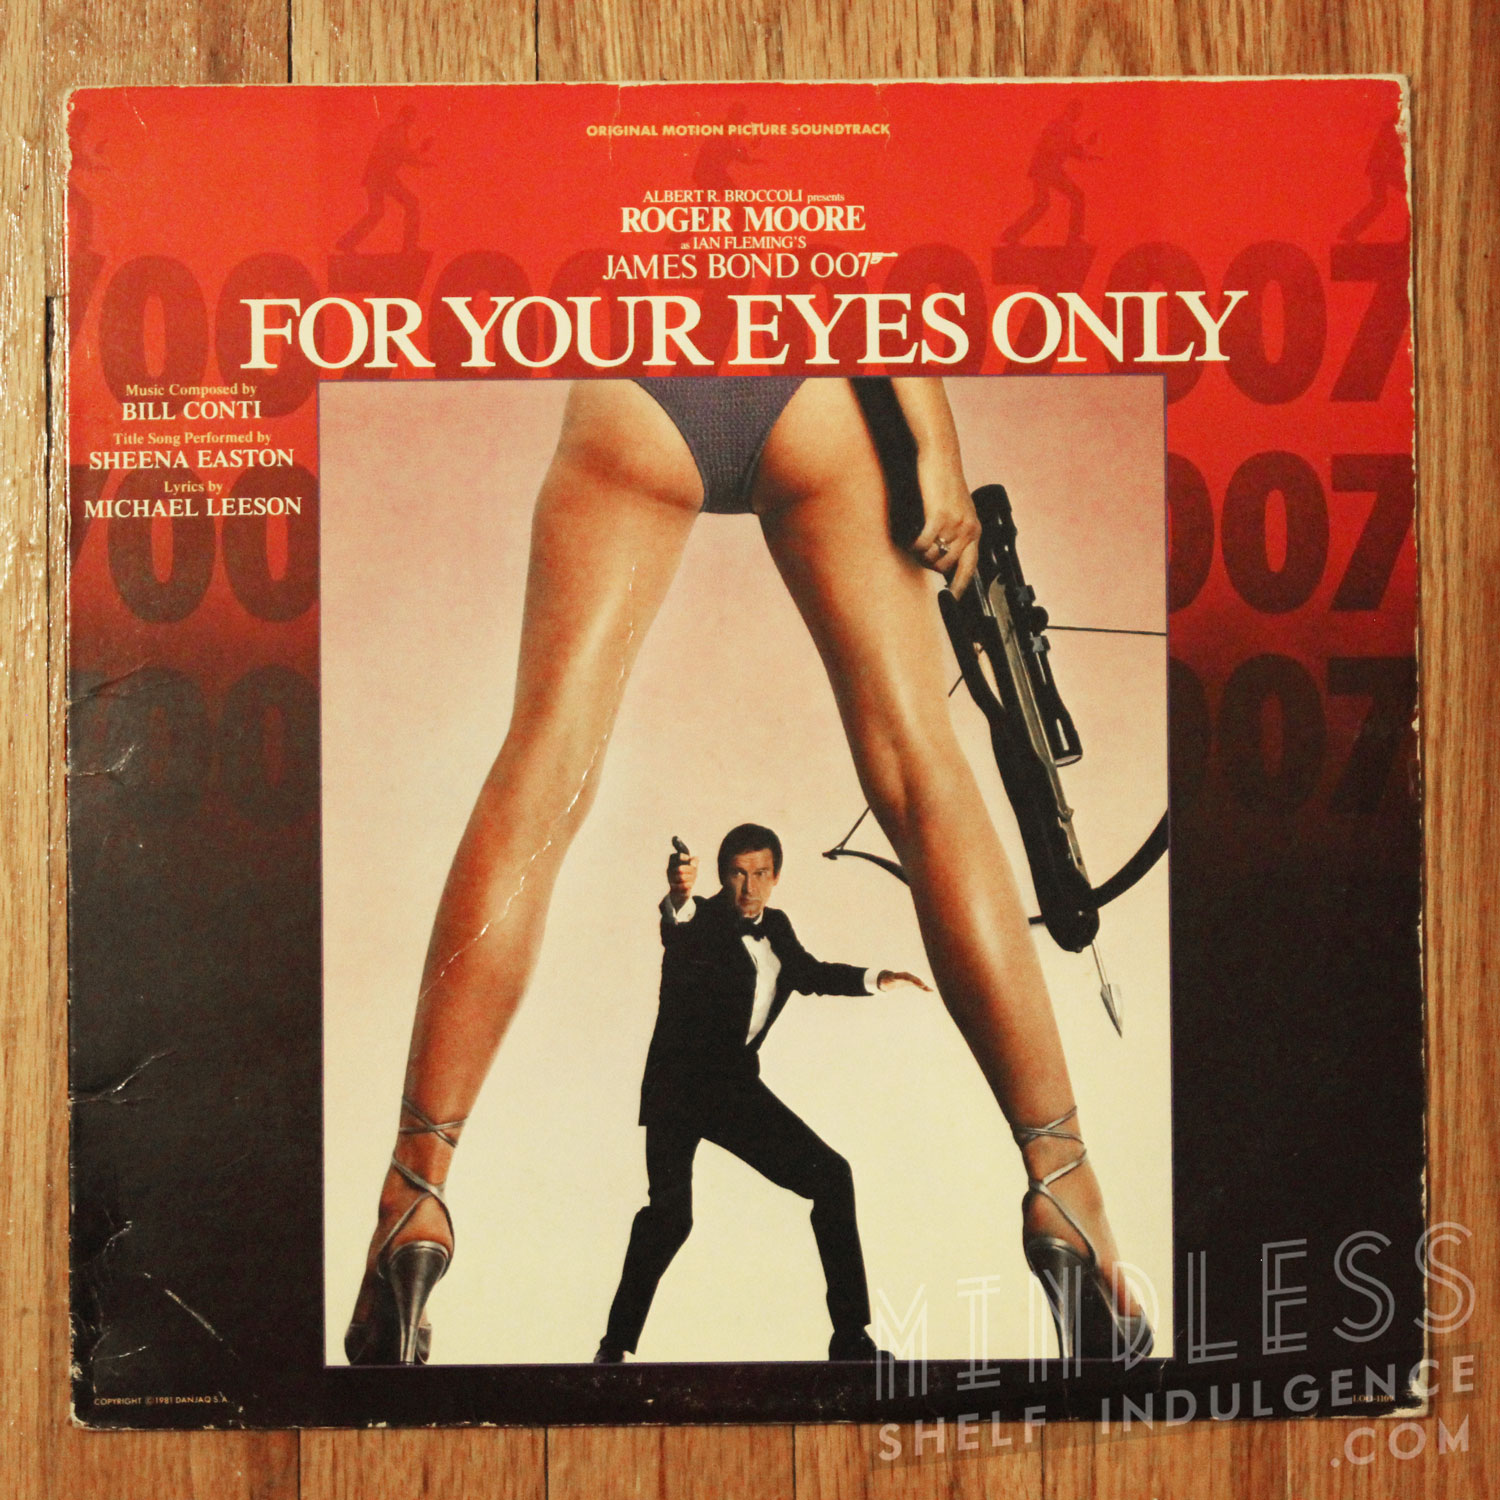 For Your Eyes Only 007 LP